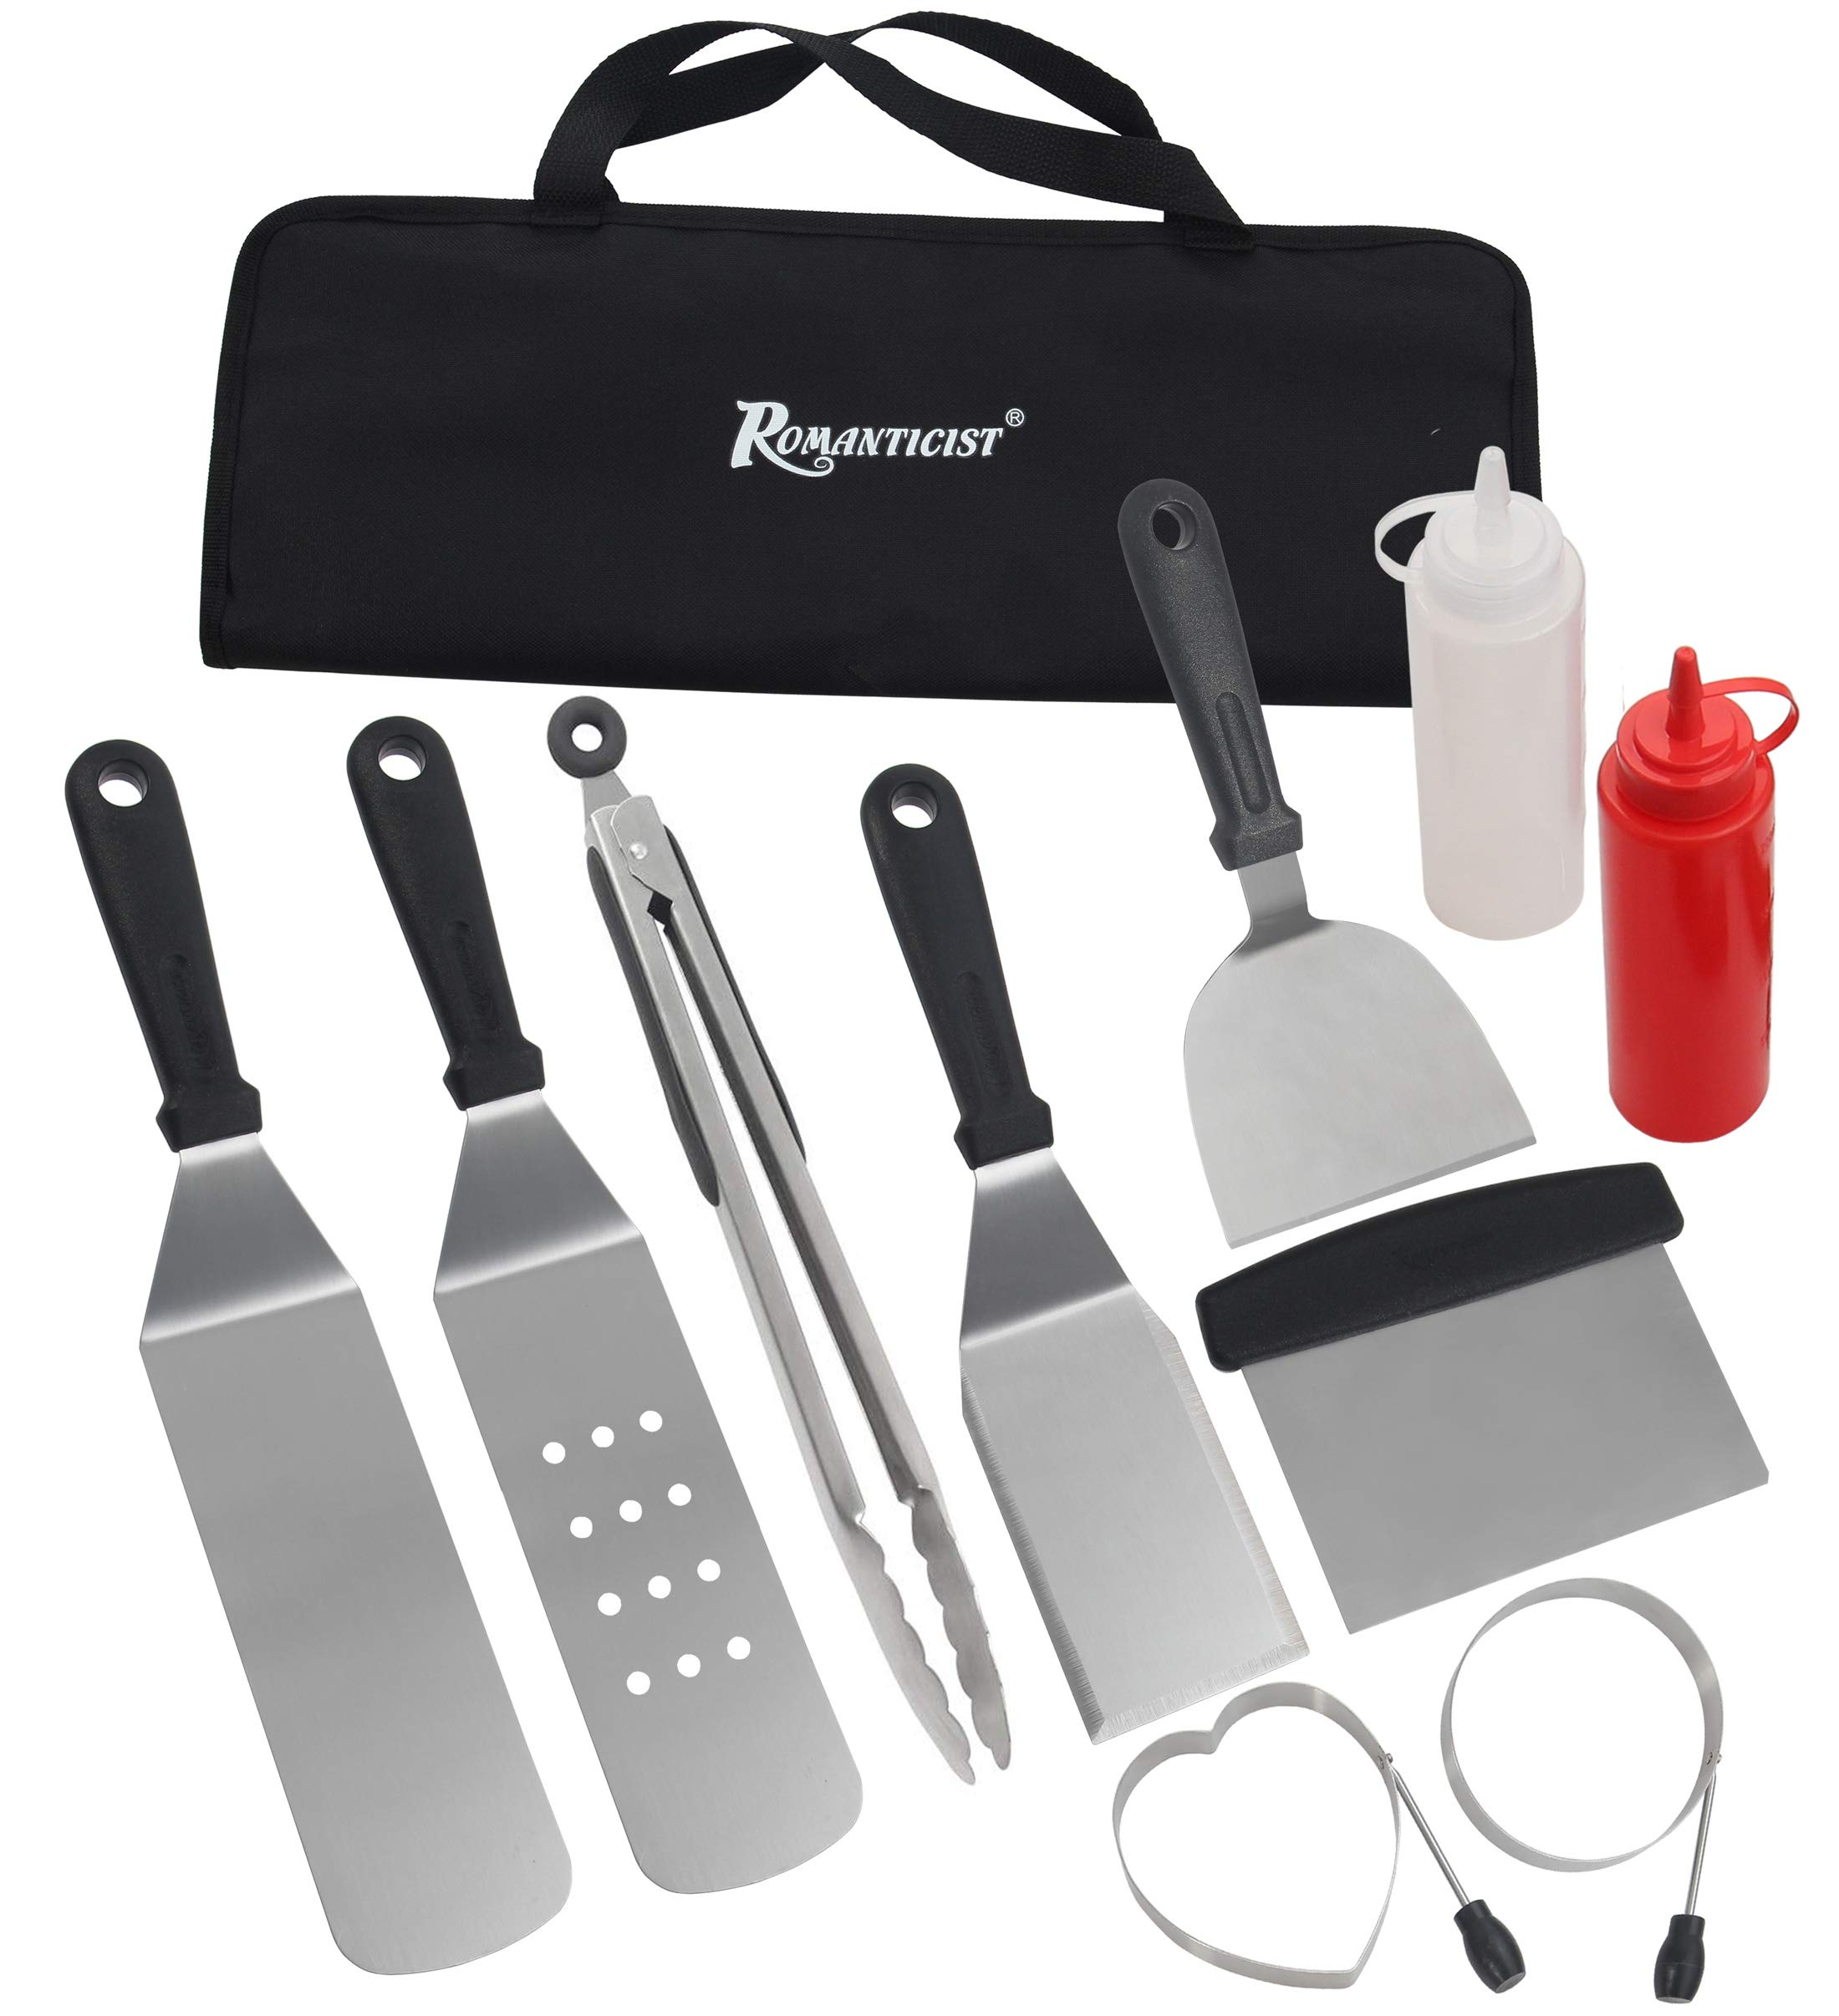 ROMANTICIST 11PC Griddle Accessories Kit with Carrying Bag - Restaurant Grade Griddle Spatula Set for Flat Top Grill Hibachi Cooking - Perfect BBQ Gift for Men Dad on Fathers Day by ROMANTICIST (Image #1)